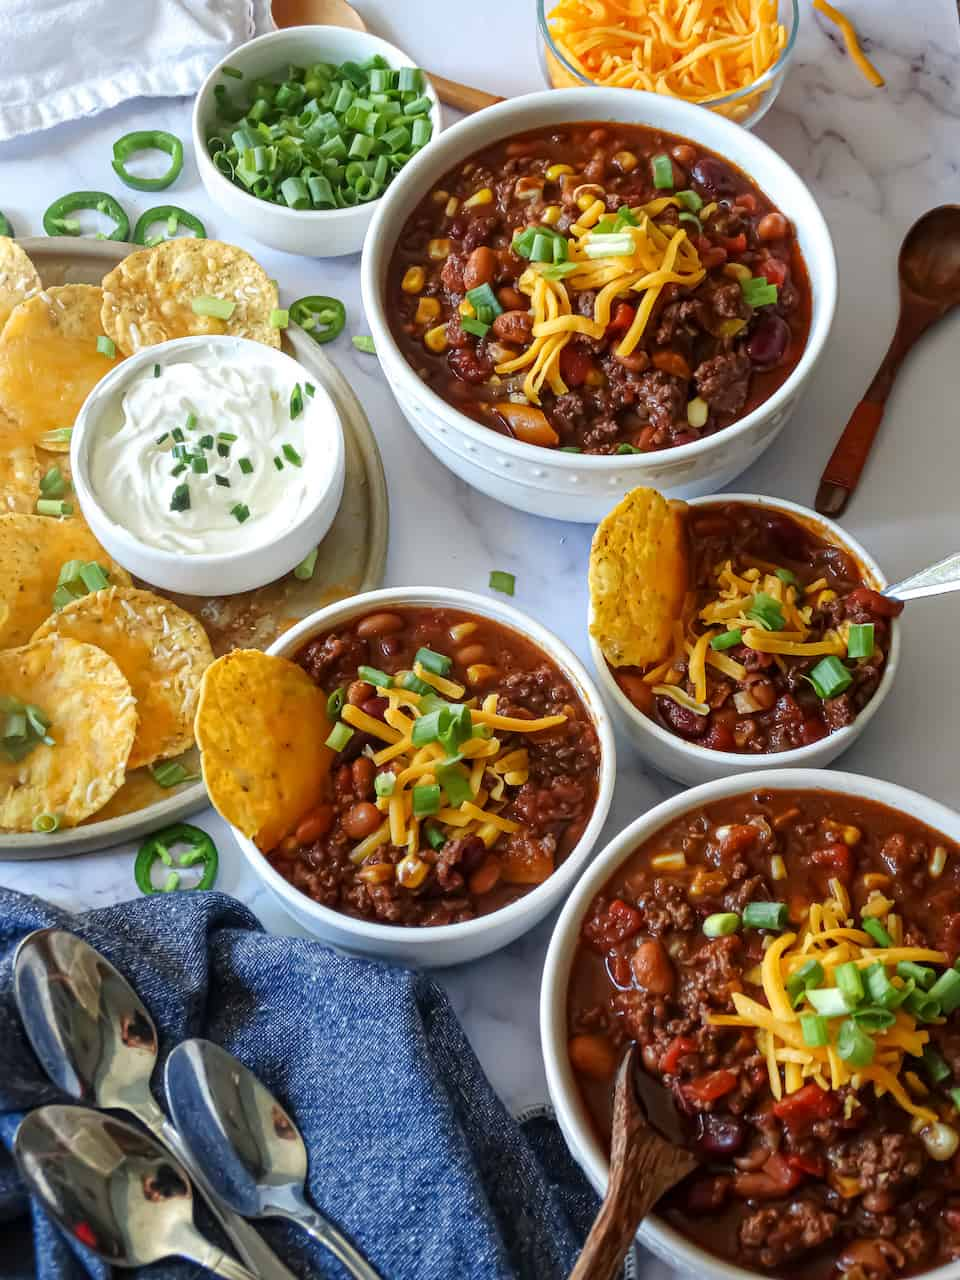 easy instant pot chili recipe in family size bowls with tortilla chips, green onions, cheddar cheese, and jalapeños against a white background